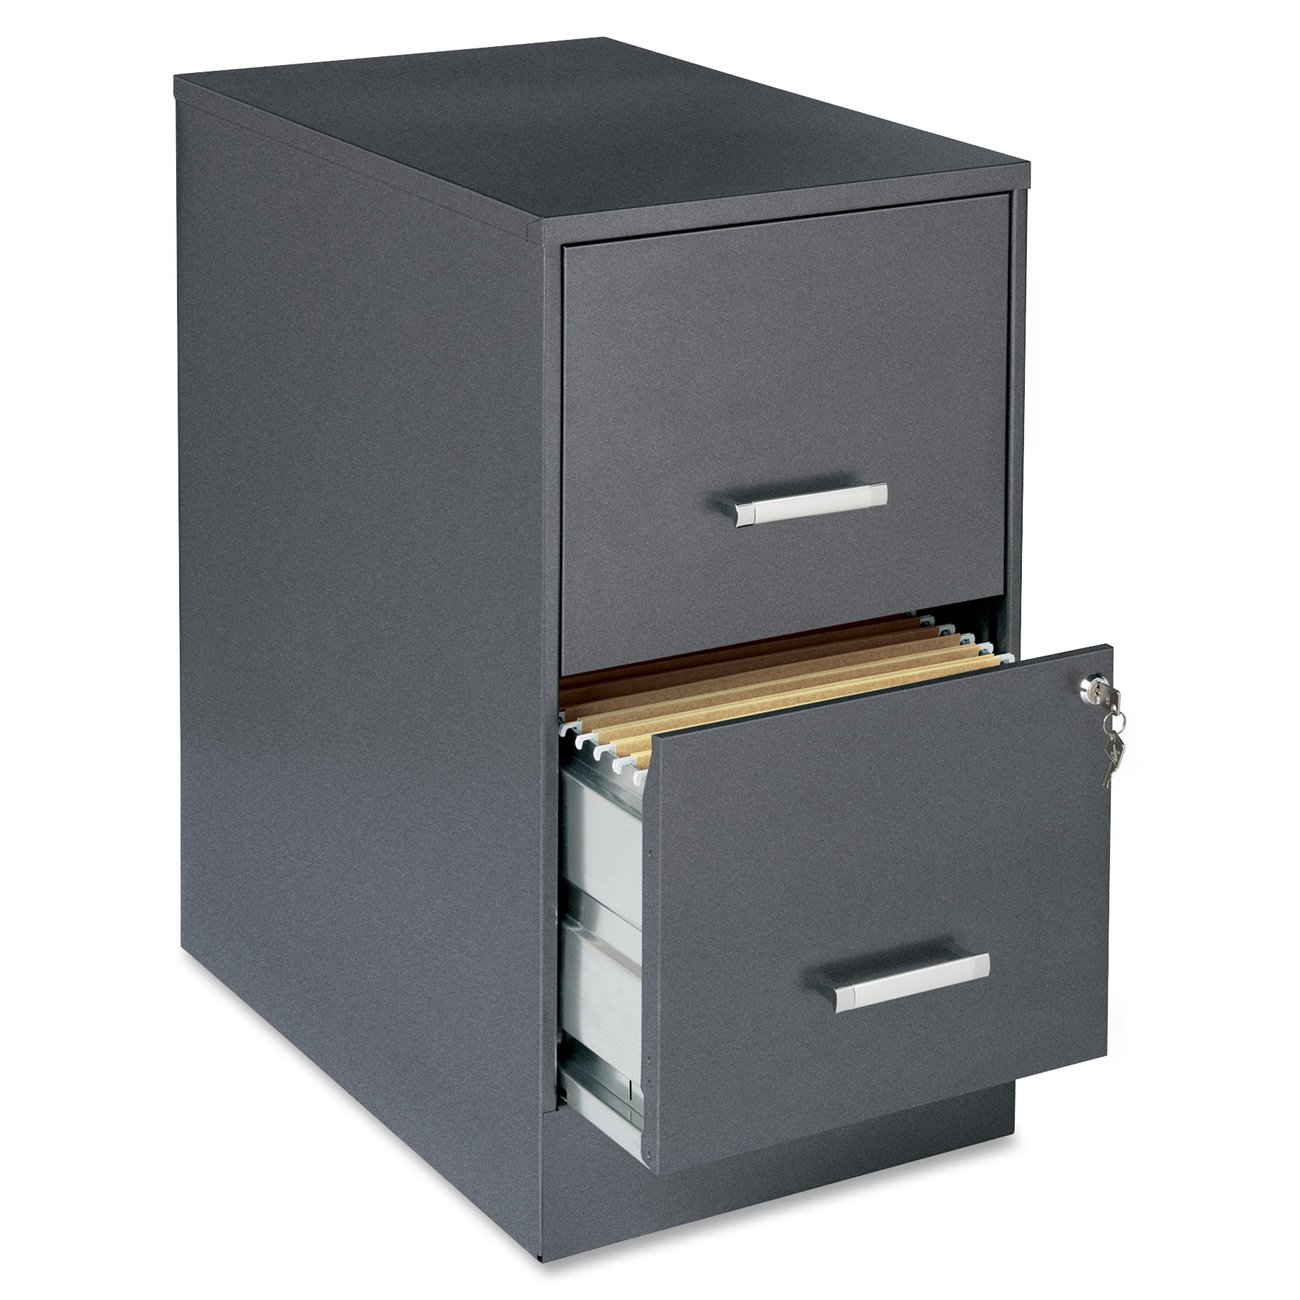 Amazon.com: Lorell 16870 2-Drawer Mobile File Cabinet, 22-Inch ...